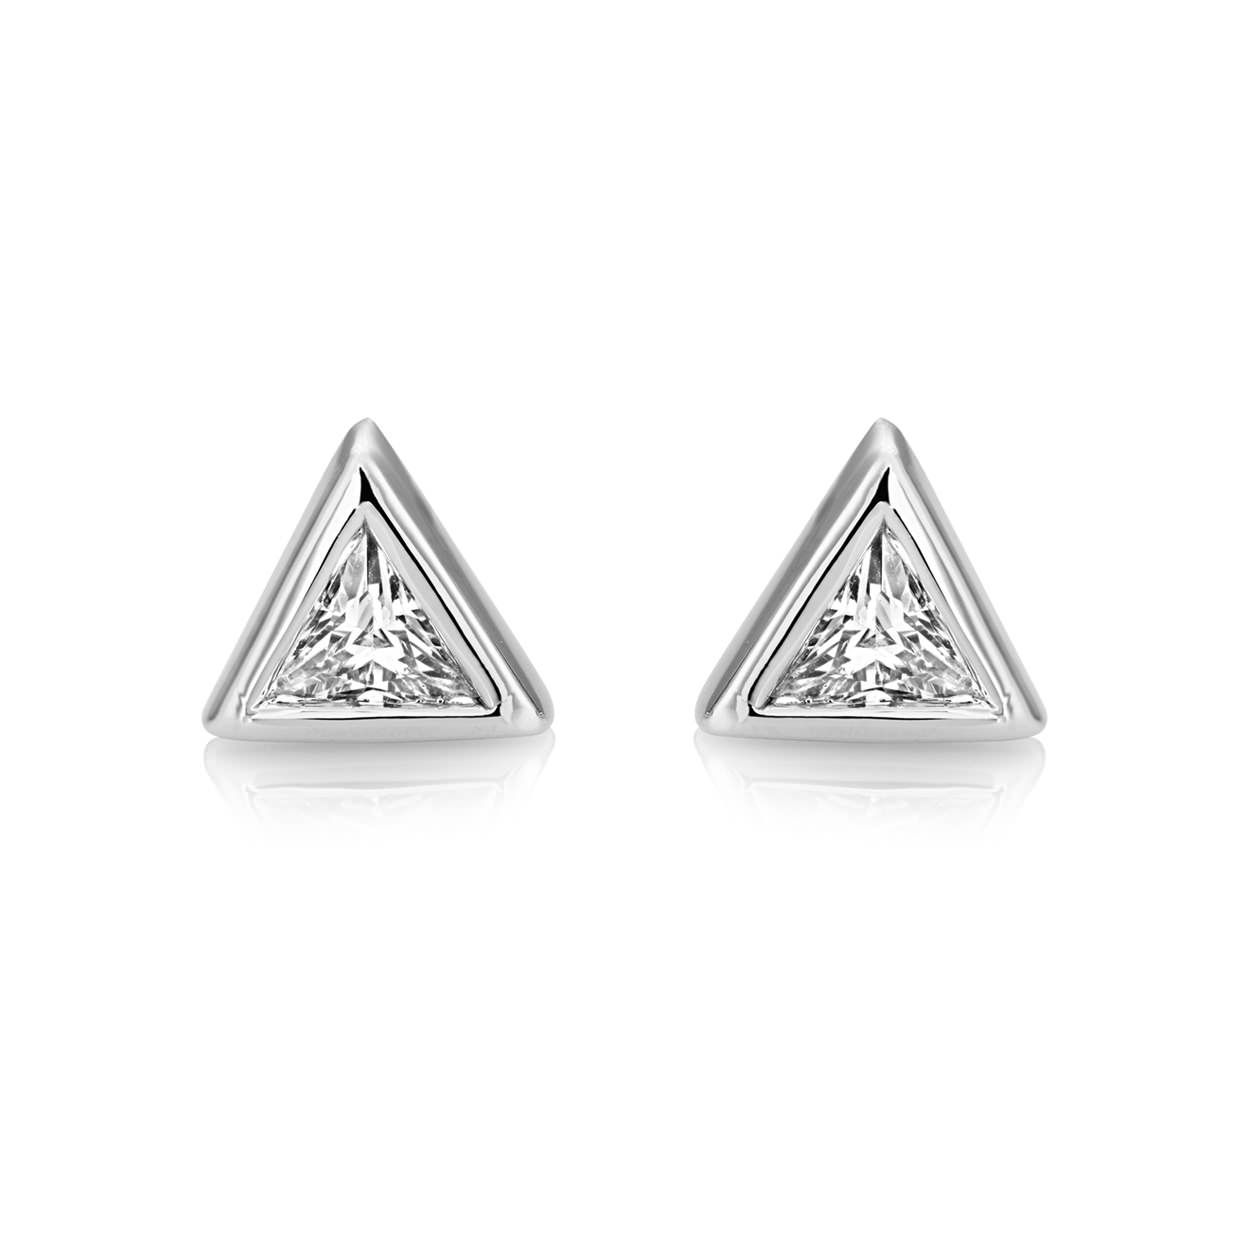 Buckley London Central Trillion Stud Earrings